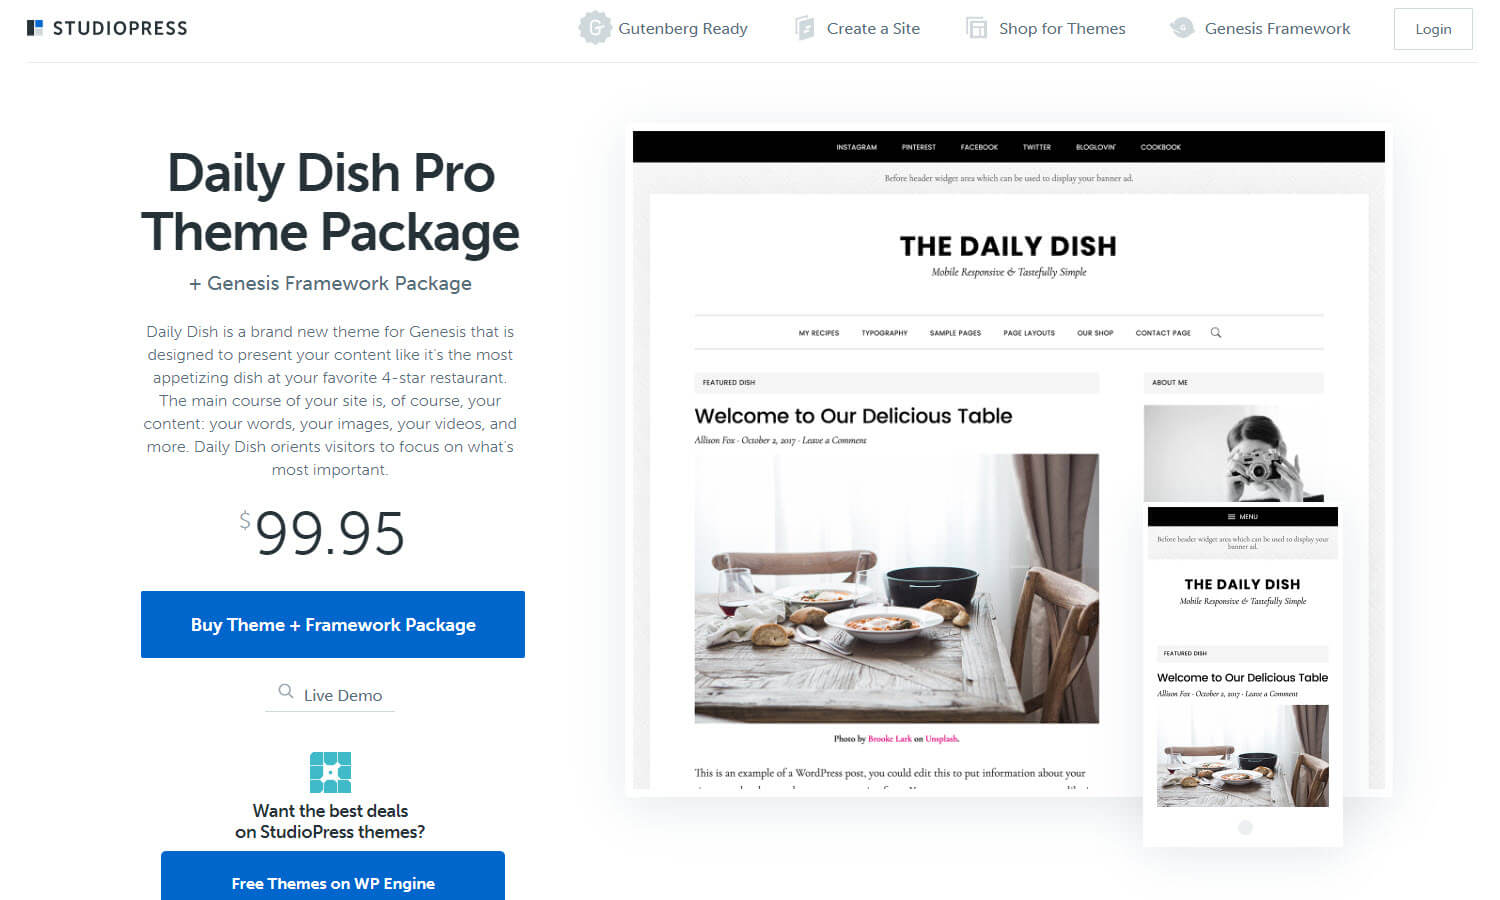 Daily Dish Pro screenshot